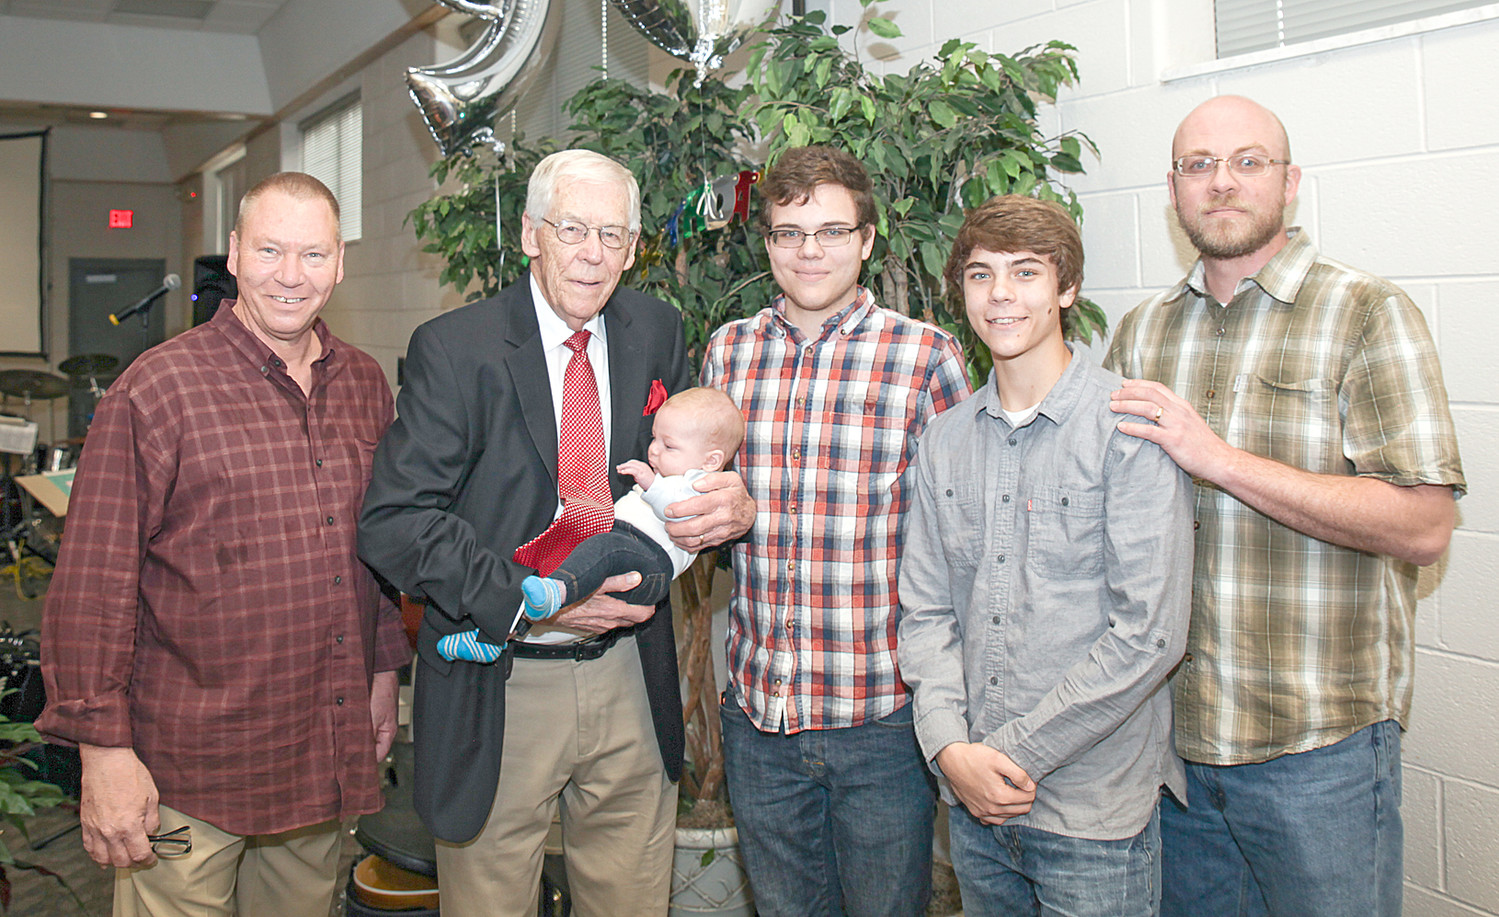 DR. WILLIAMS,center, stands in the midst of five generations of Williams. From left are Mike Williams, Dr. Williams holding Rhett Williams, Michael Williams, Alex Williams and Shaun Williams.  Dr. Williams has two children, Mike Williams and Marci Webb, not pictured; two grandchildren; five greatgrandchildren; and one great-great-grandchild.